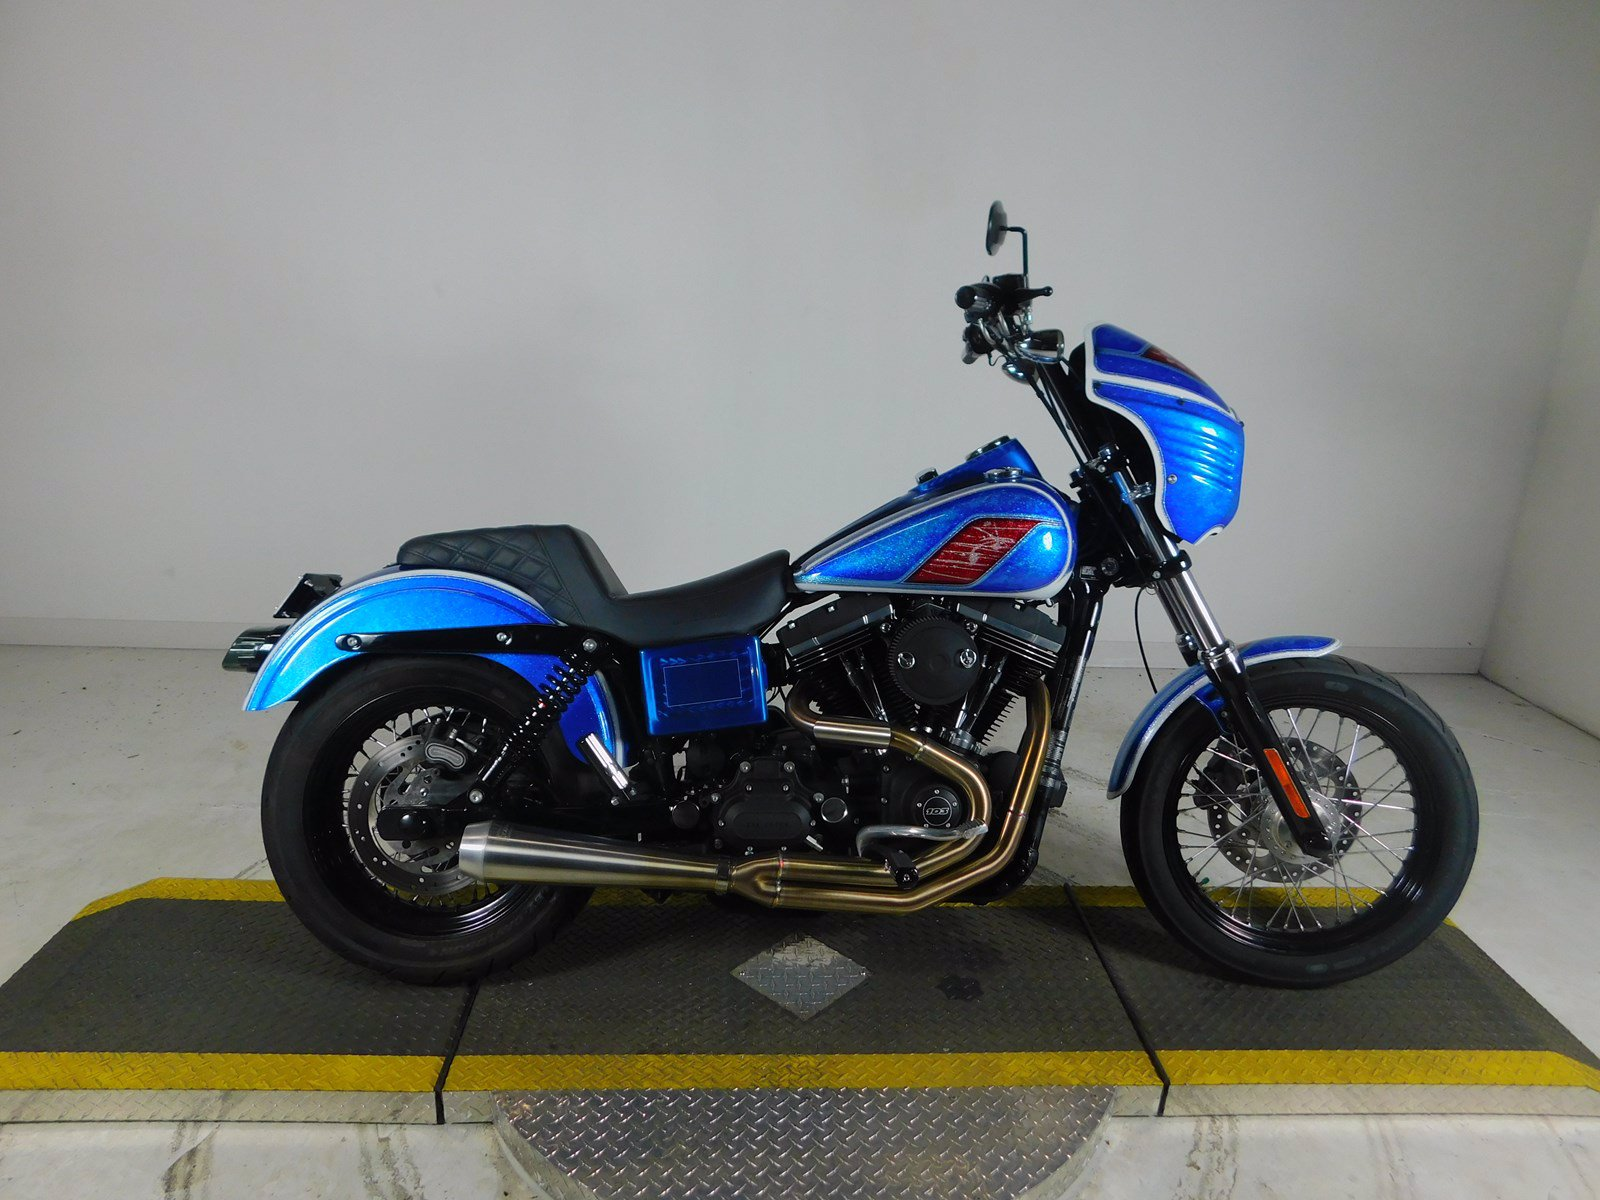 Pre-Owned 2017 Harley-Davidson Dyna Street Bob FXDB on